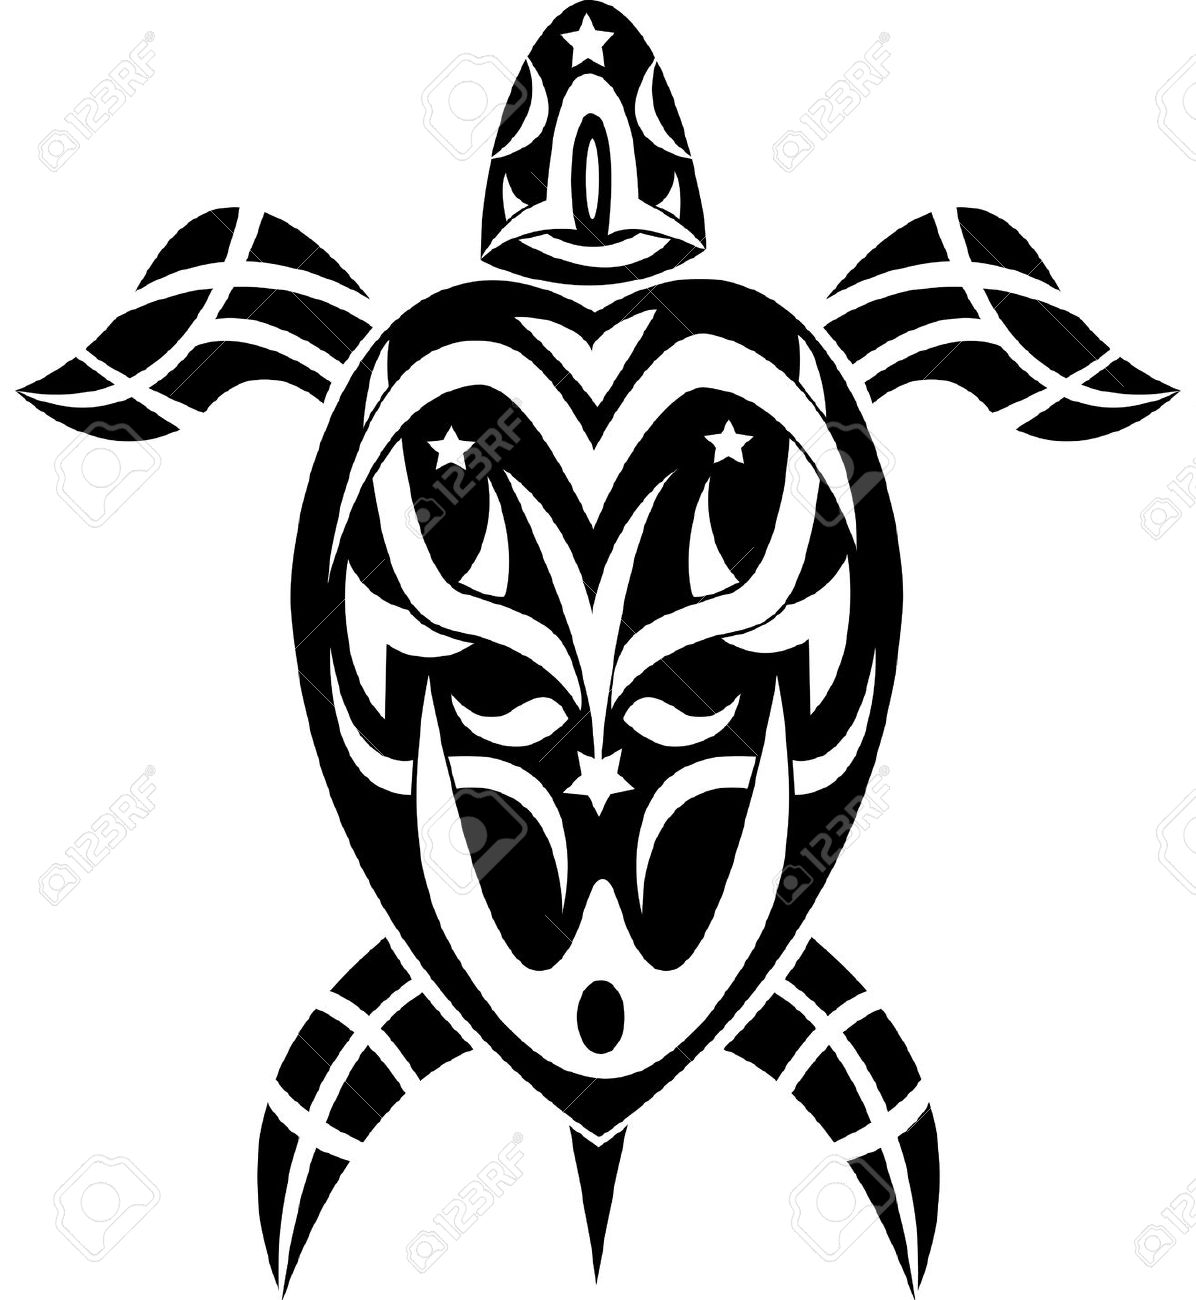 50 awesome tribal turtle tattoos designs - Tatouage tribal signification ...